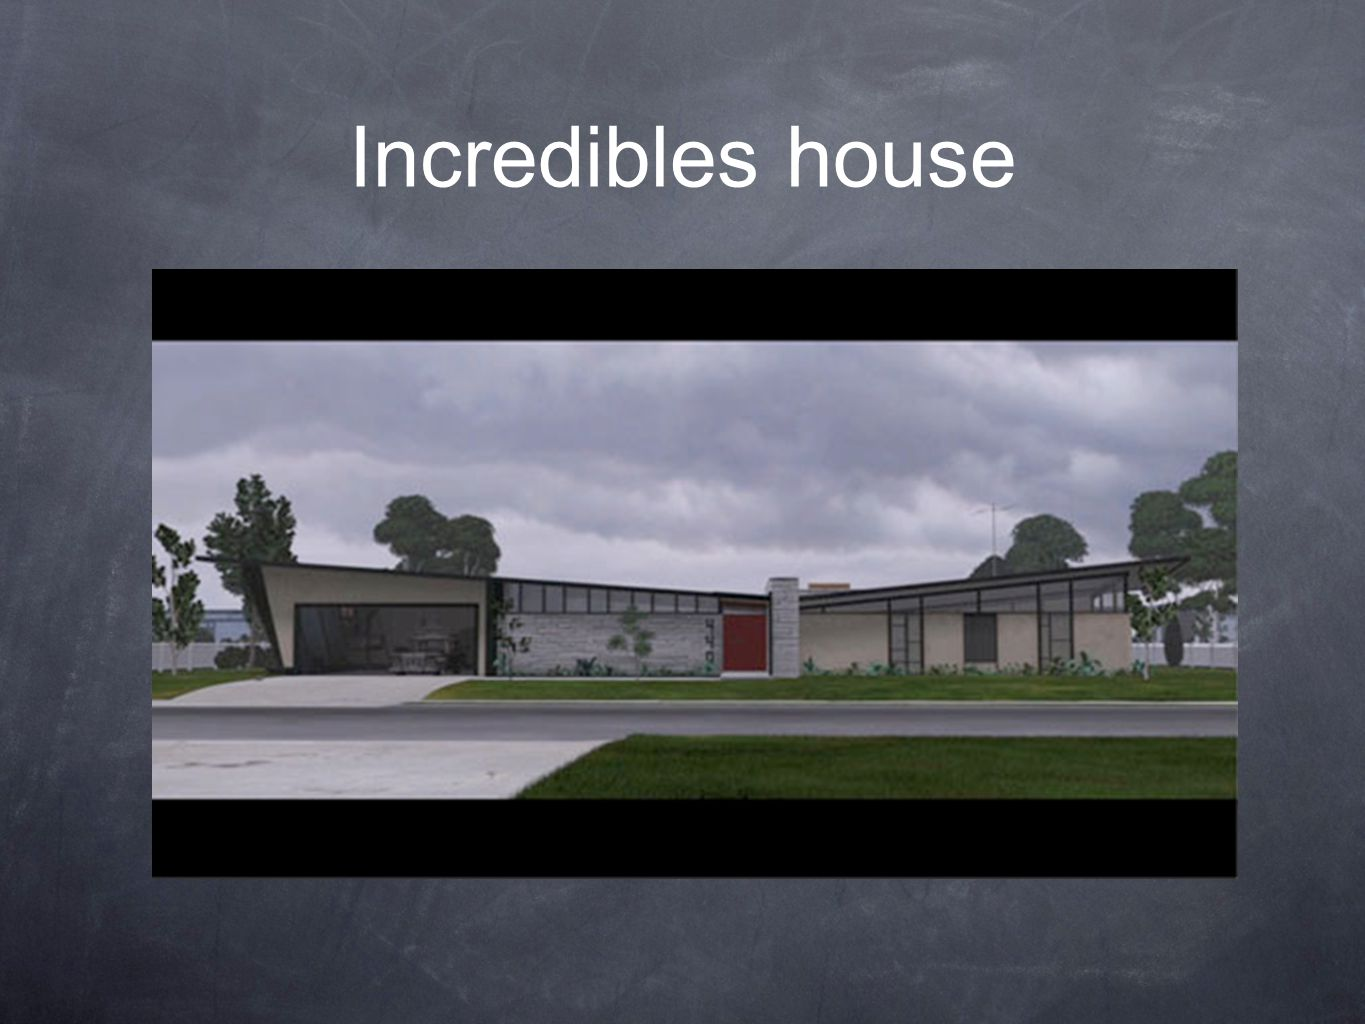 Incredibles house